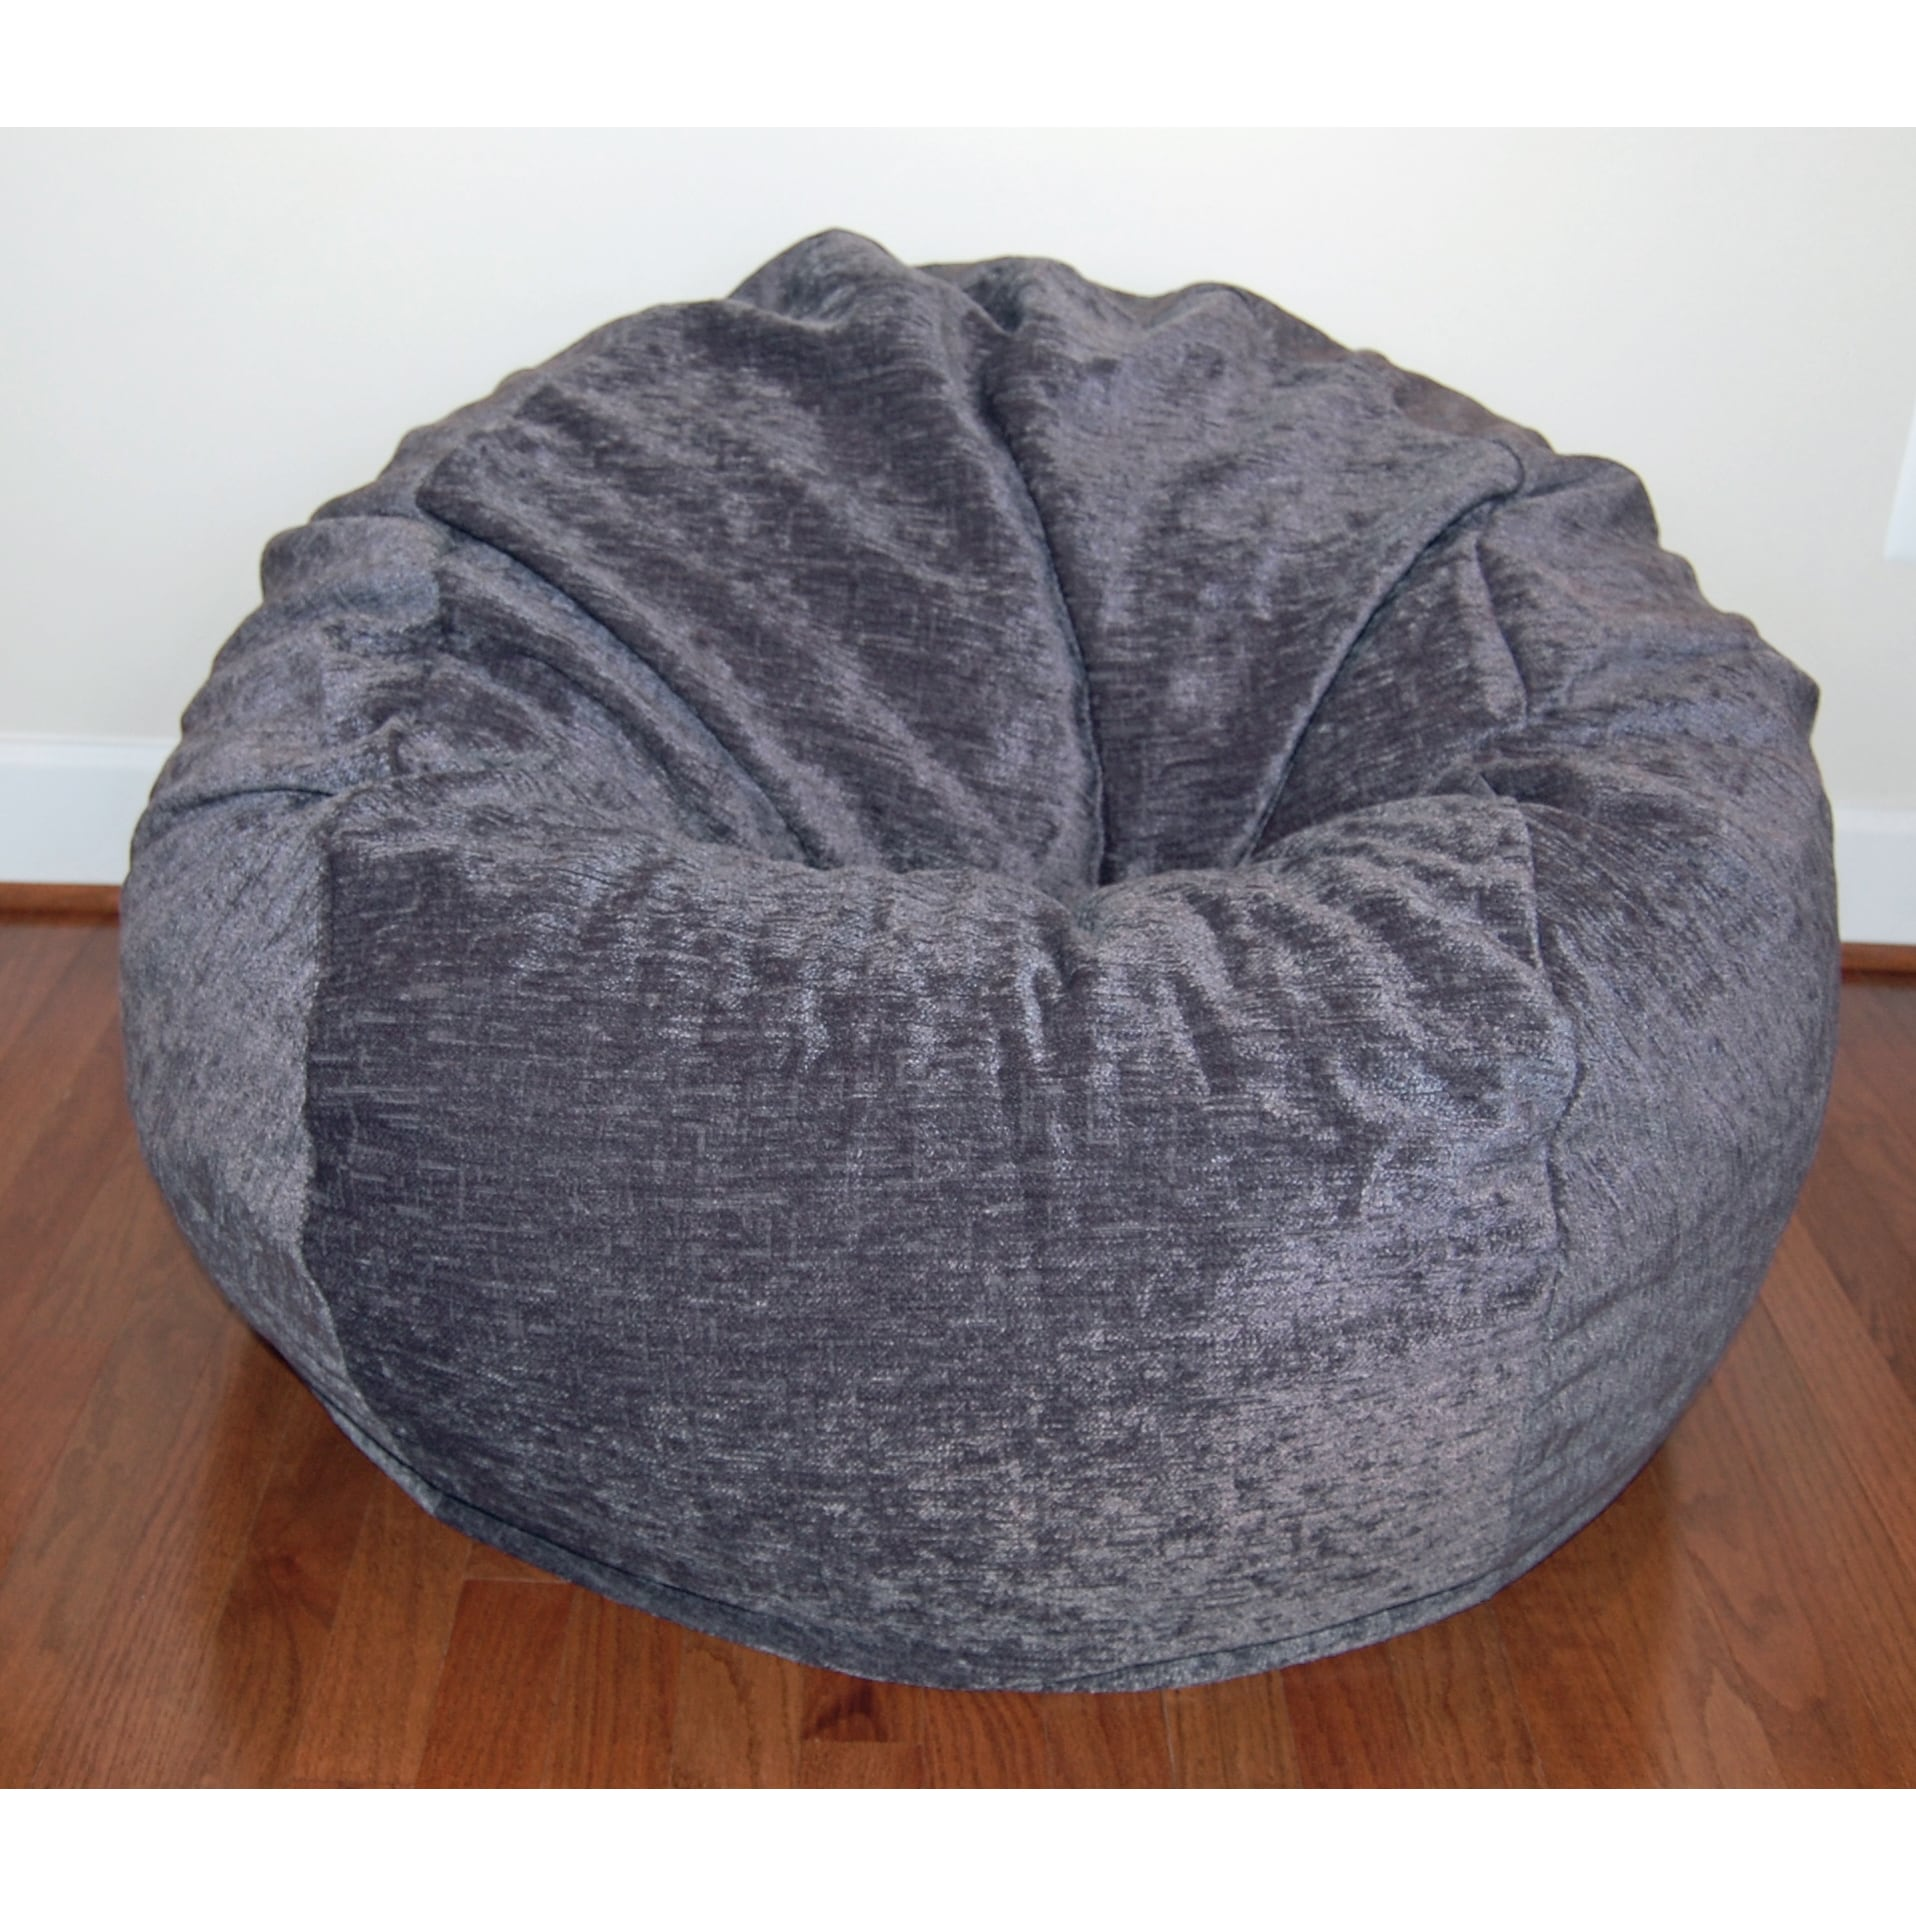 Astounding Buy Chenille Bean Bag Chairs Online At Overstock Our Best Home Interior And Landscaping Mentranervesignezvosmurscom